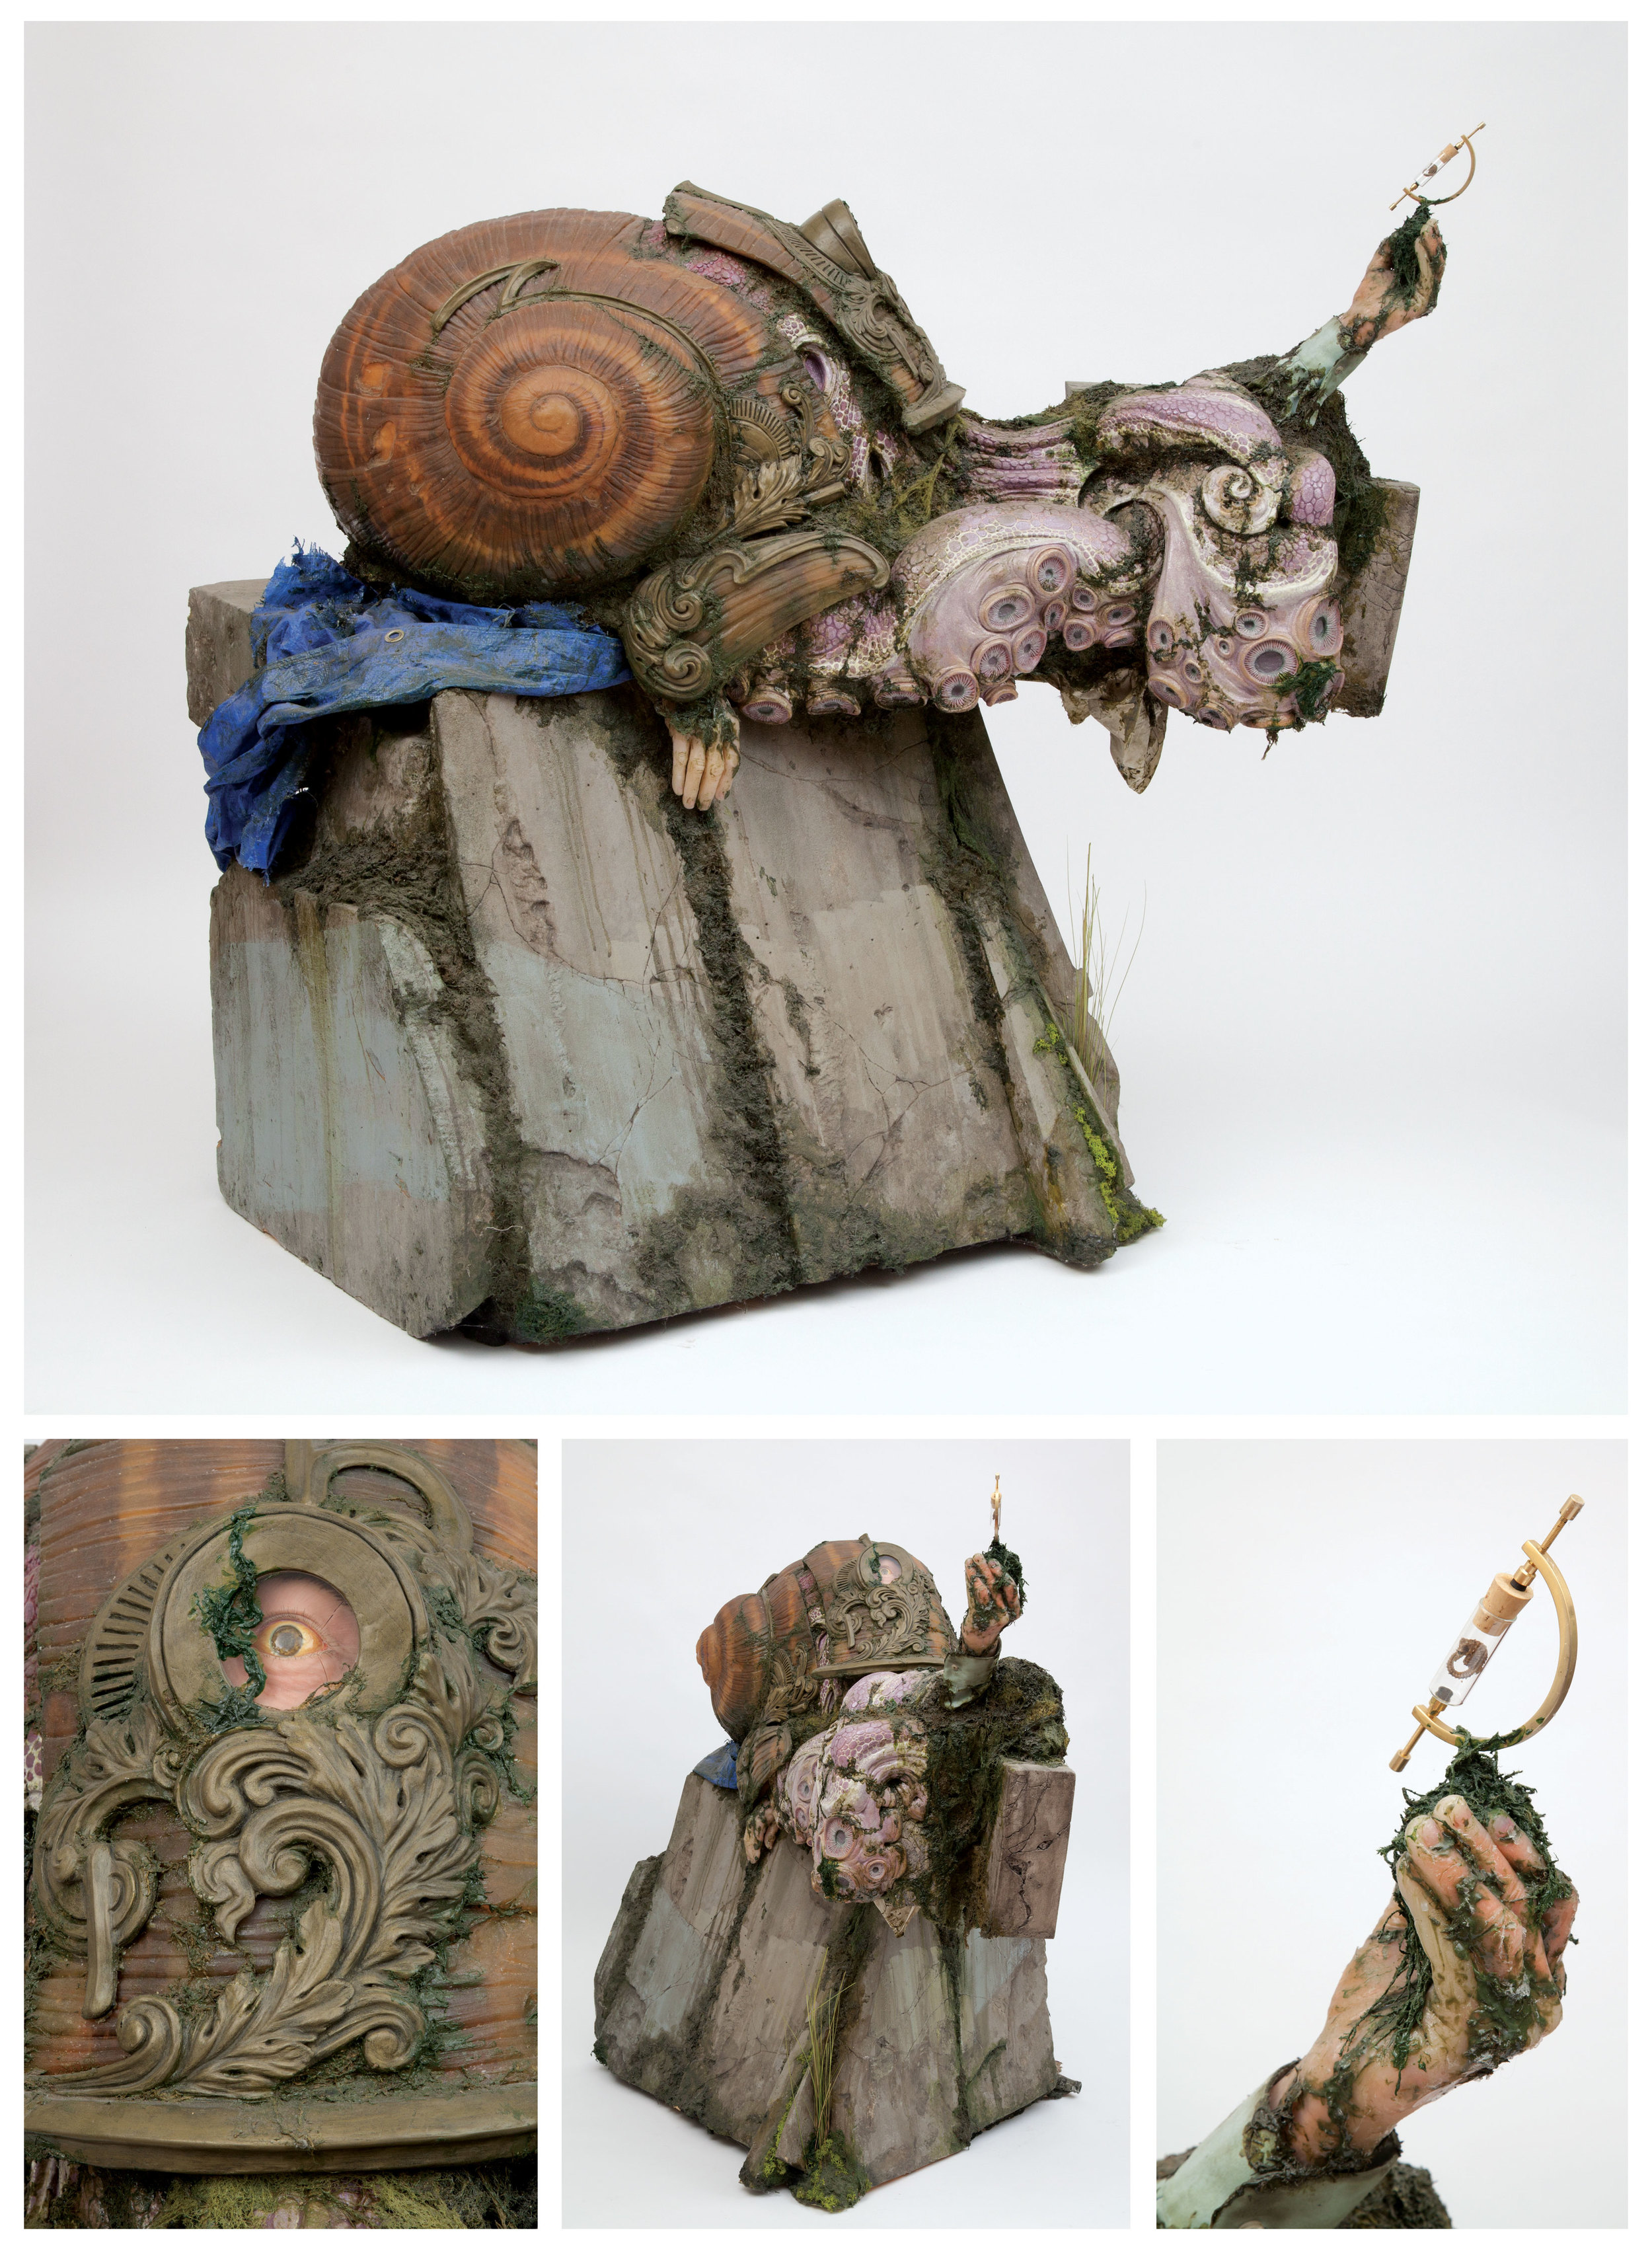 The Vessel.  2010 - carving foam, fiberglass, urethane plastic, silicone, acrylic & polymer clay. 3.5' x 3.5'.